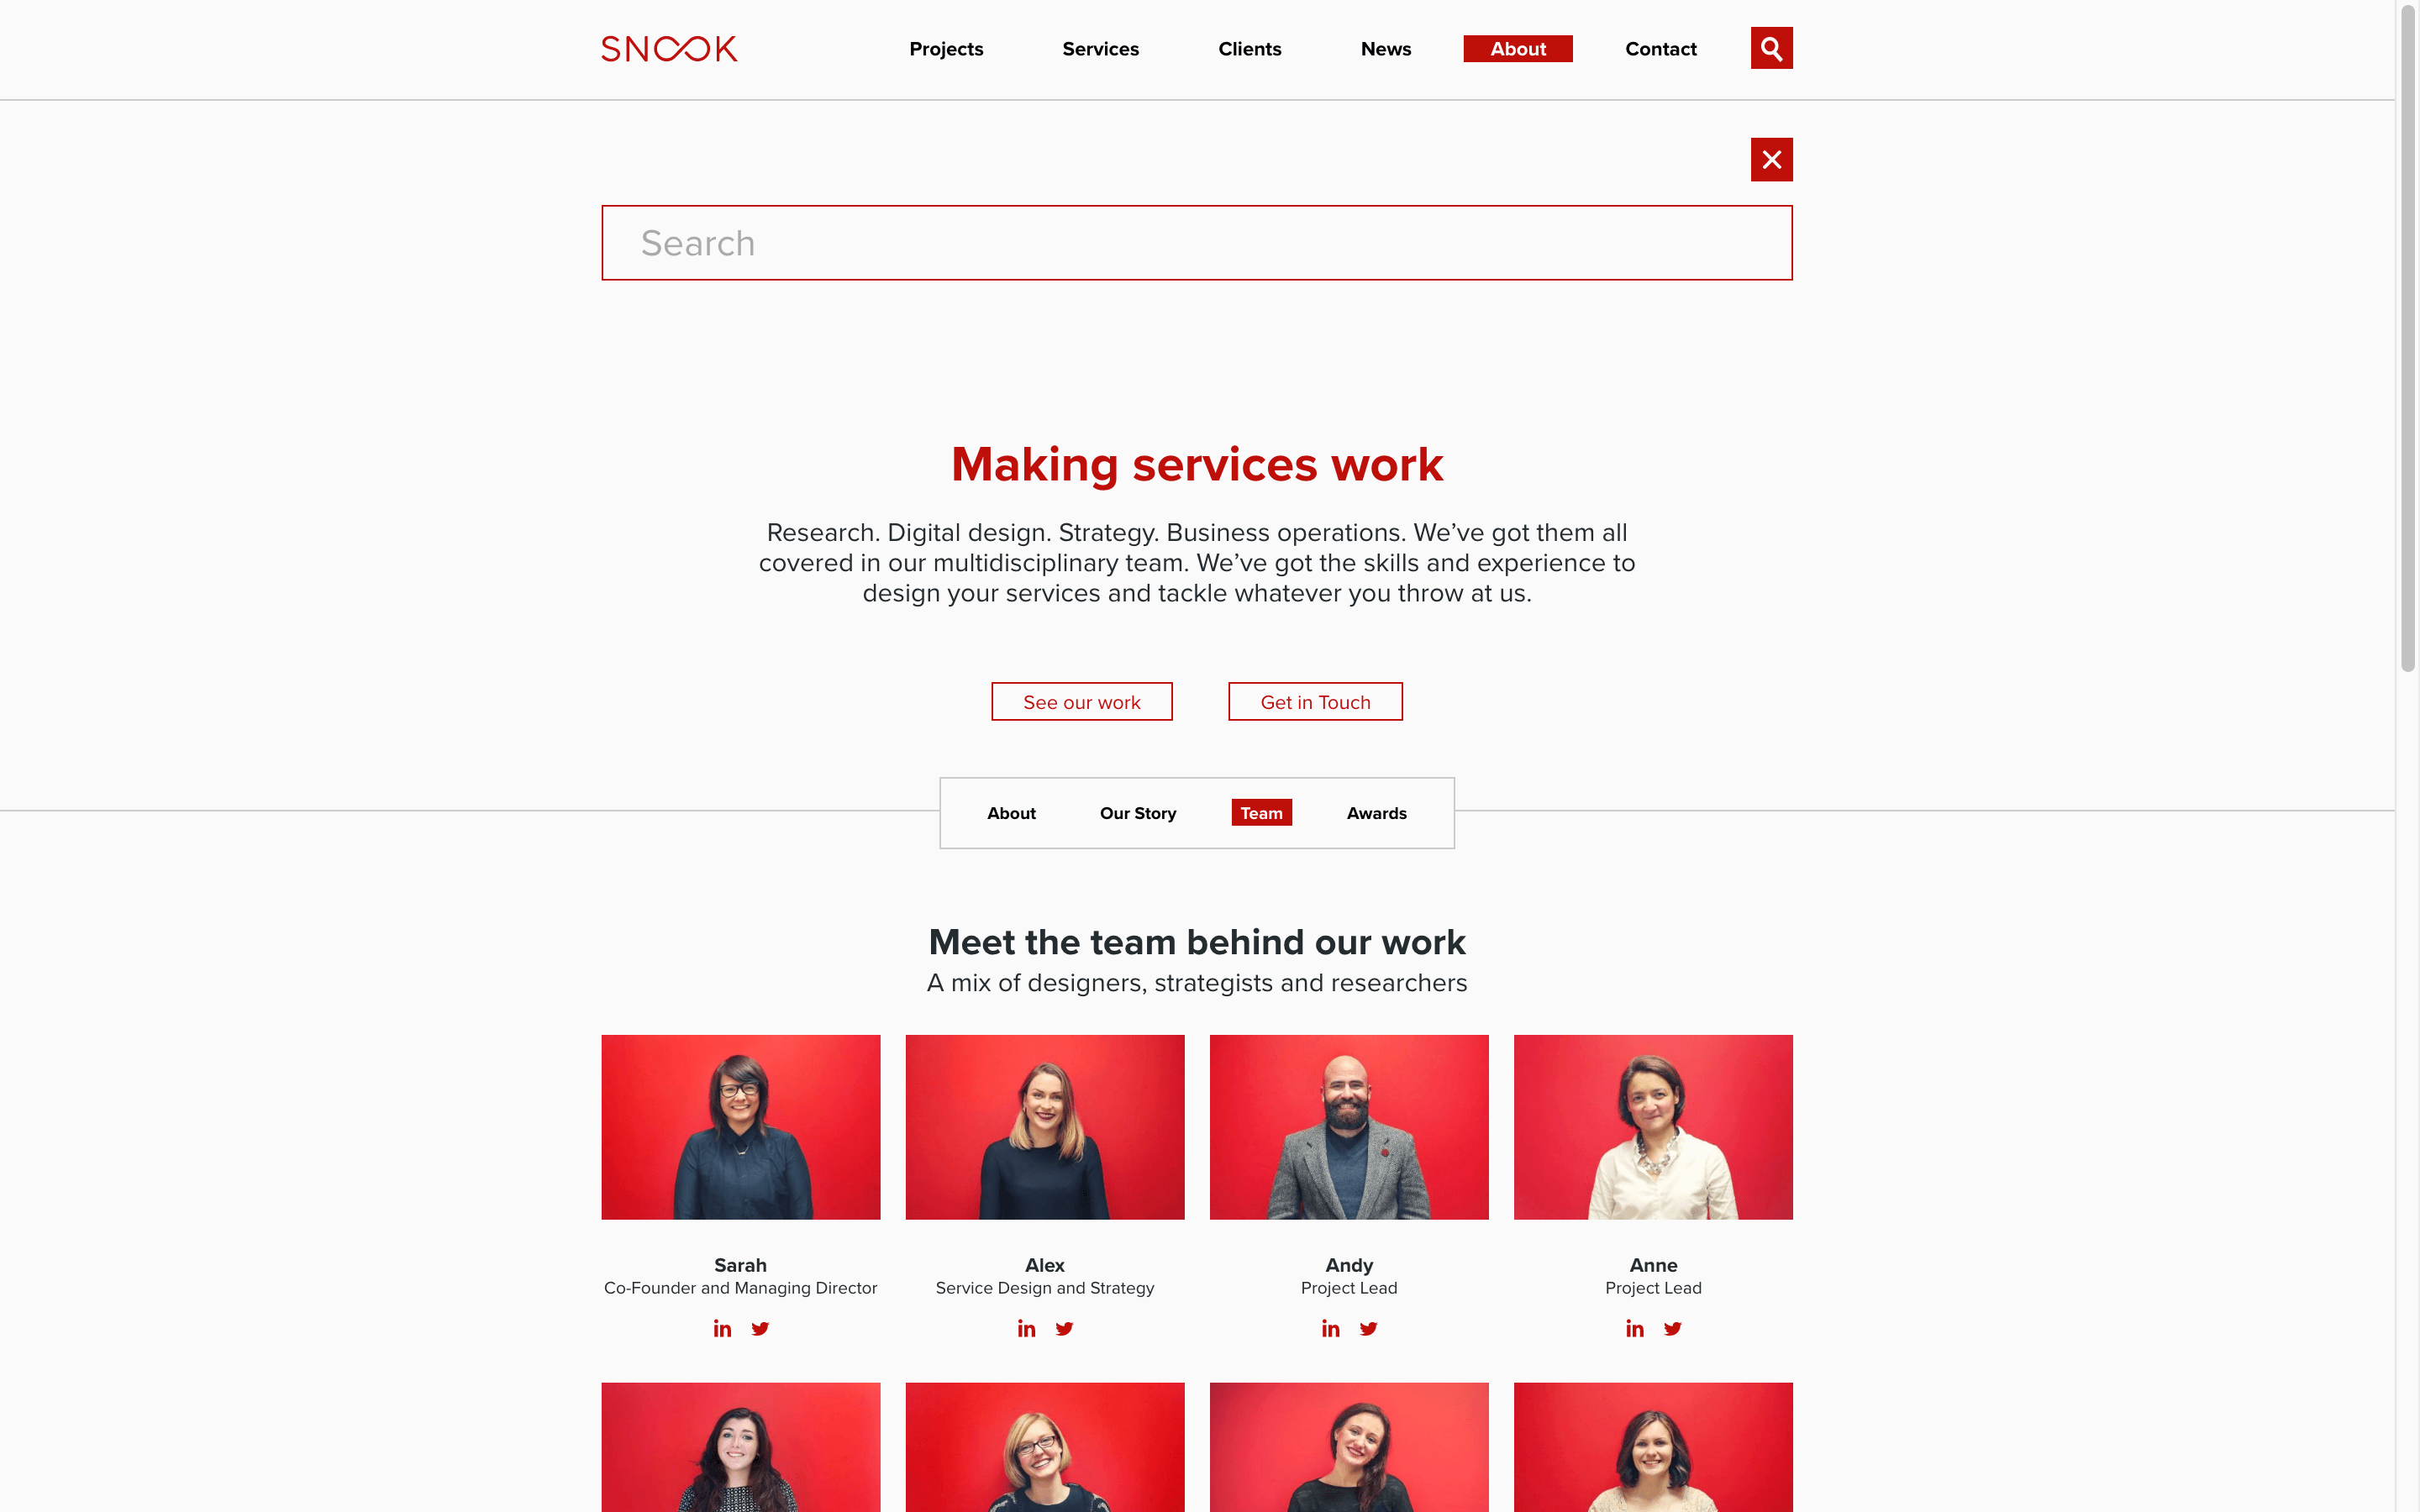 Snook Website - About page